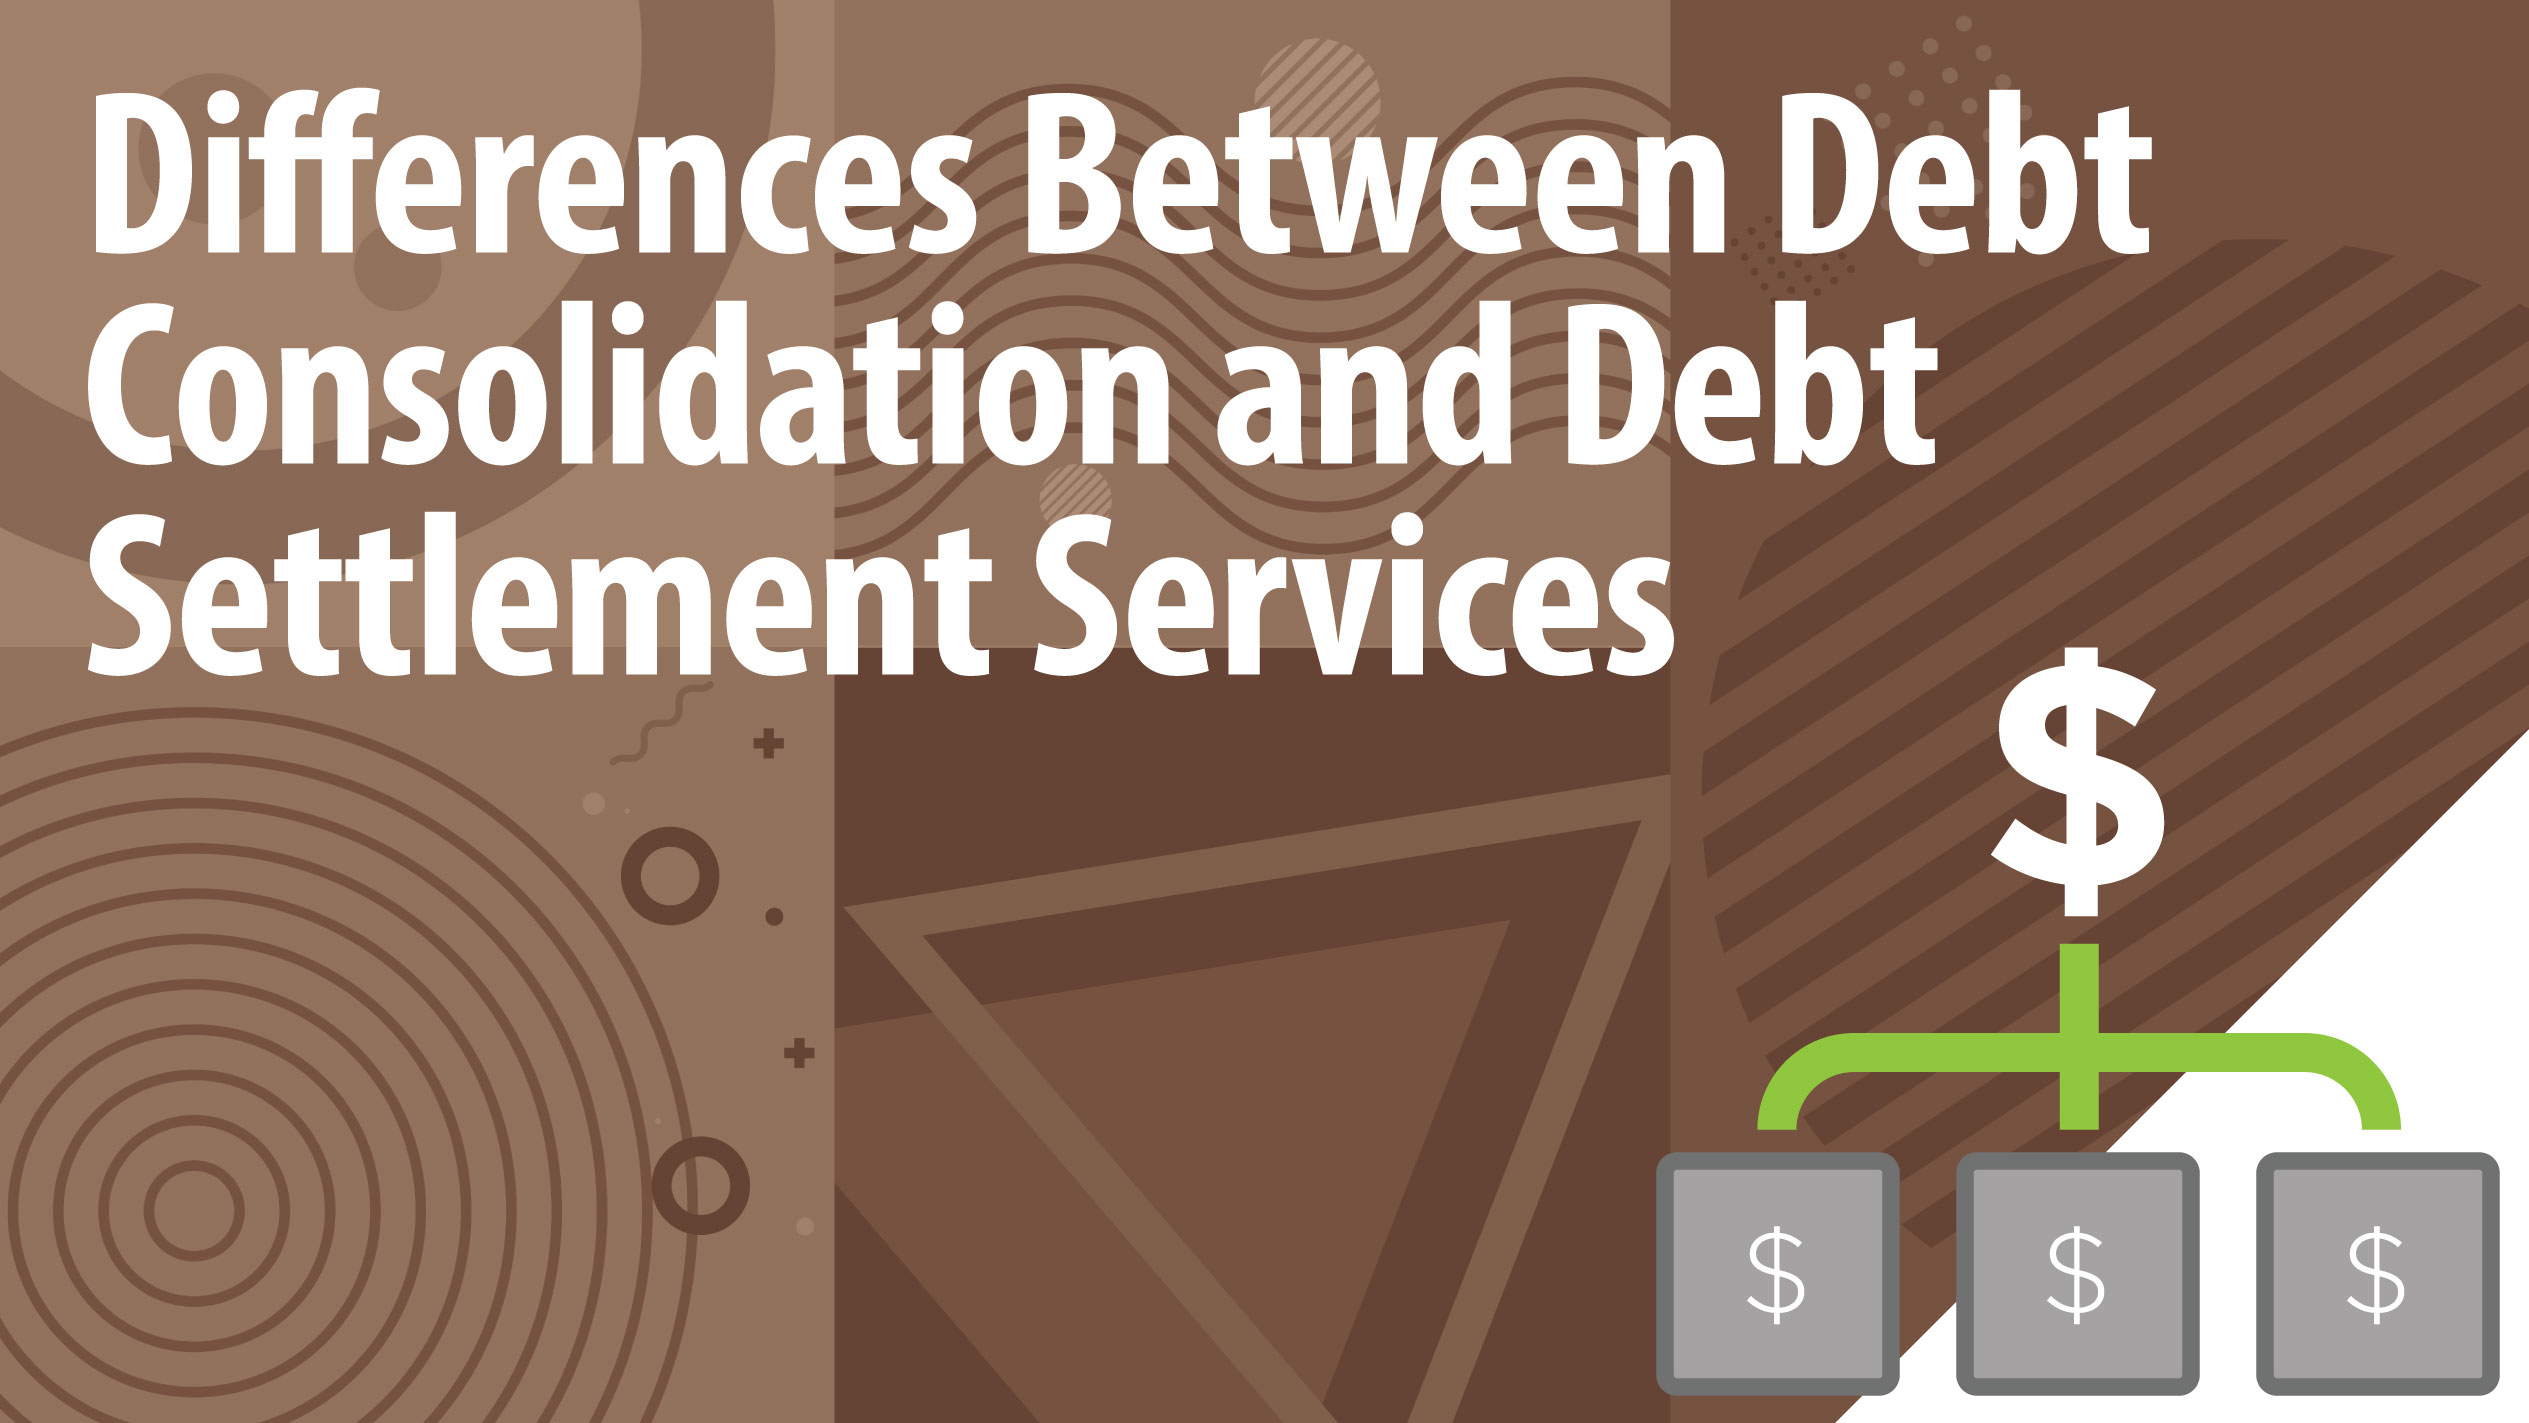 Differences Between Debt Consolidation and Debt Settlement Services